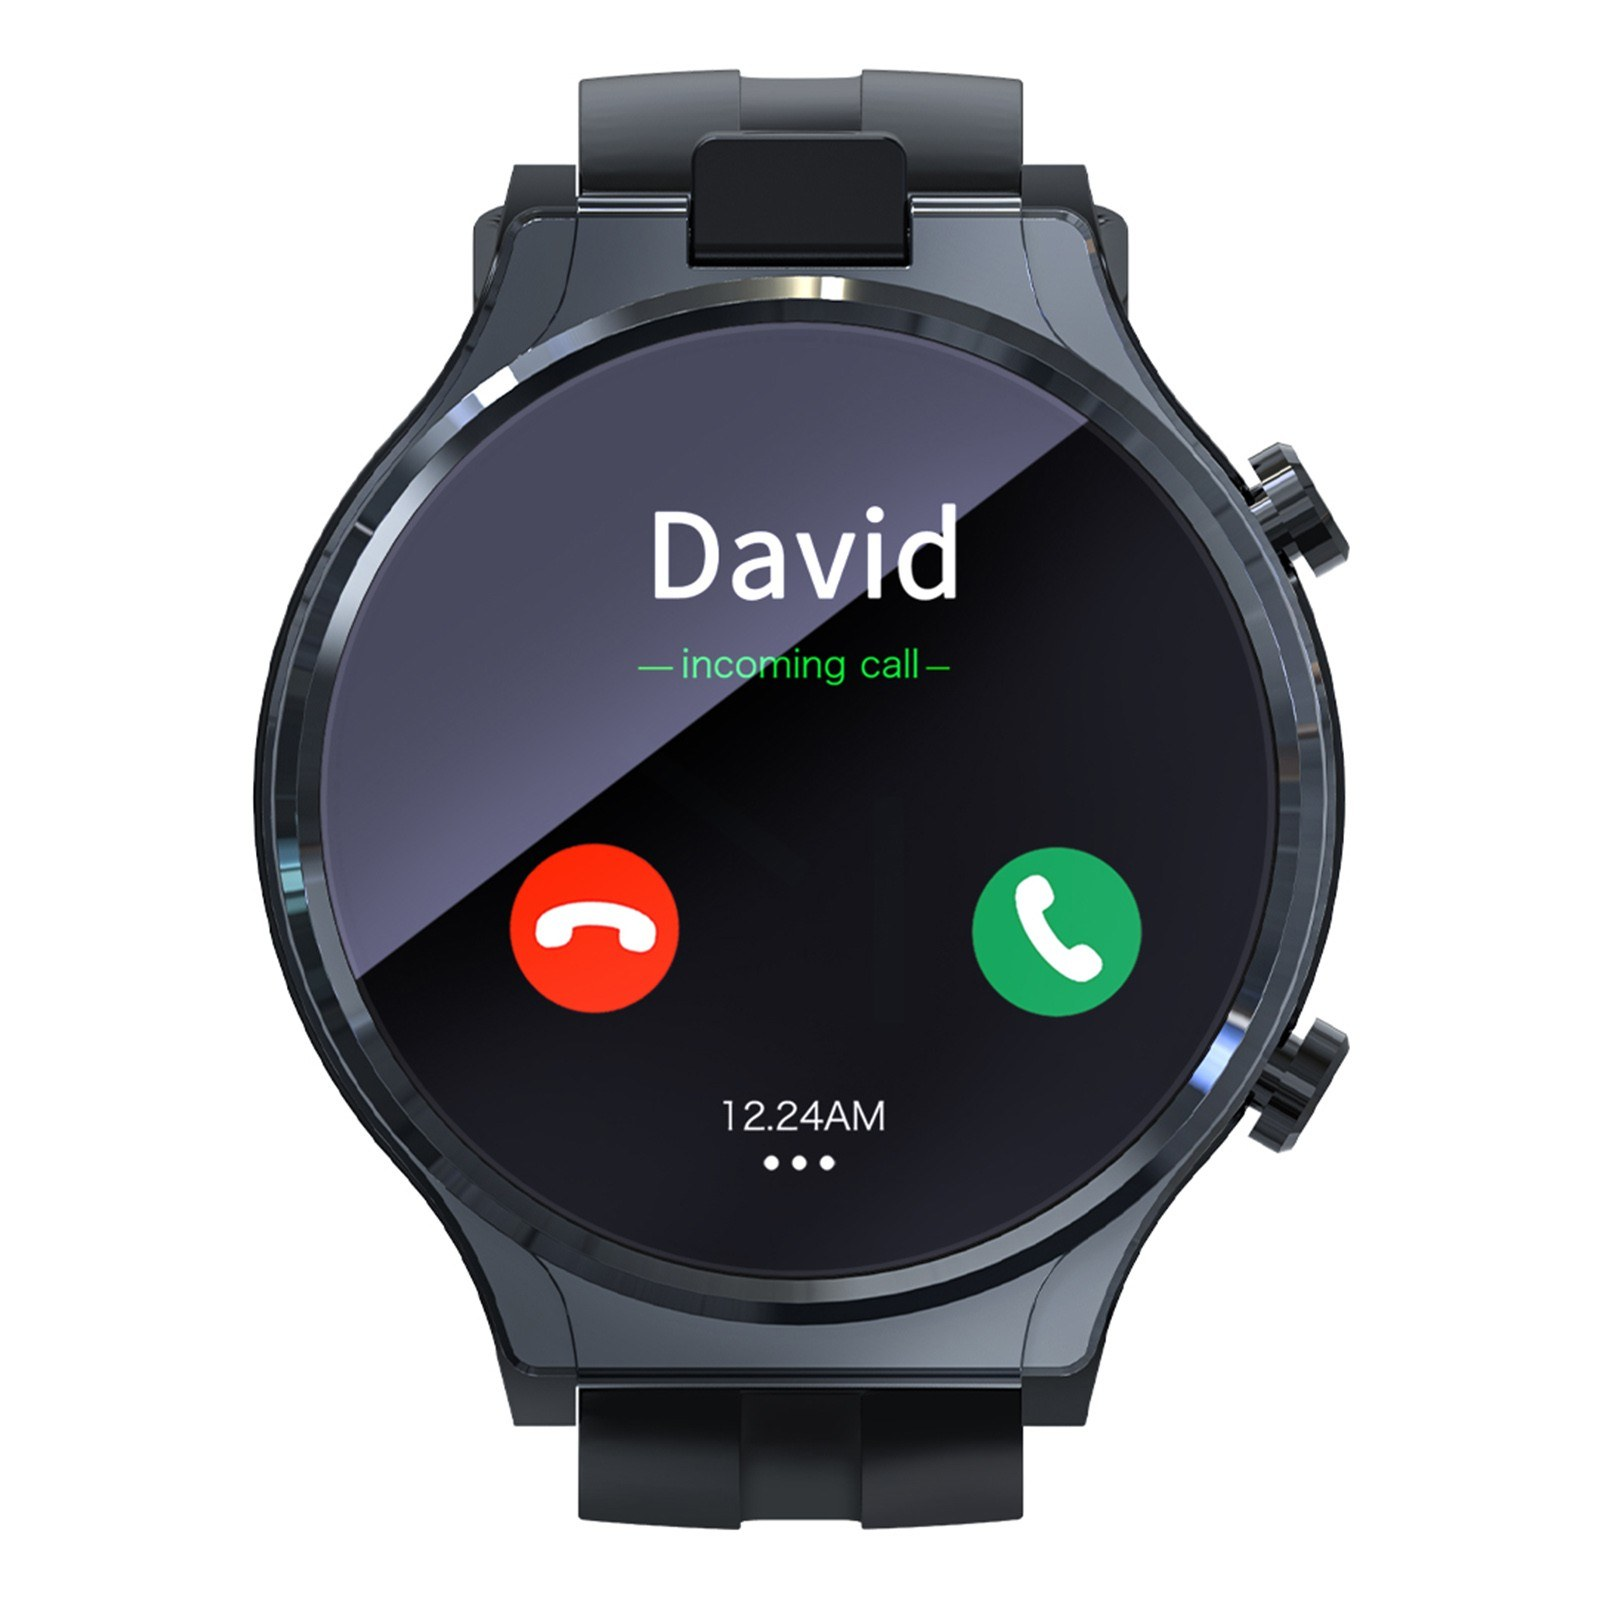 Cafago - 62% OFF LOKMAT APPLLP Pro 2.1-Inch TFT Full-Touch Screen Smart Watch 4GB RAM+64GB ROM,free shipping+$202.77